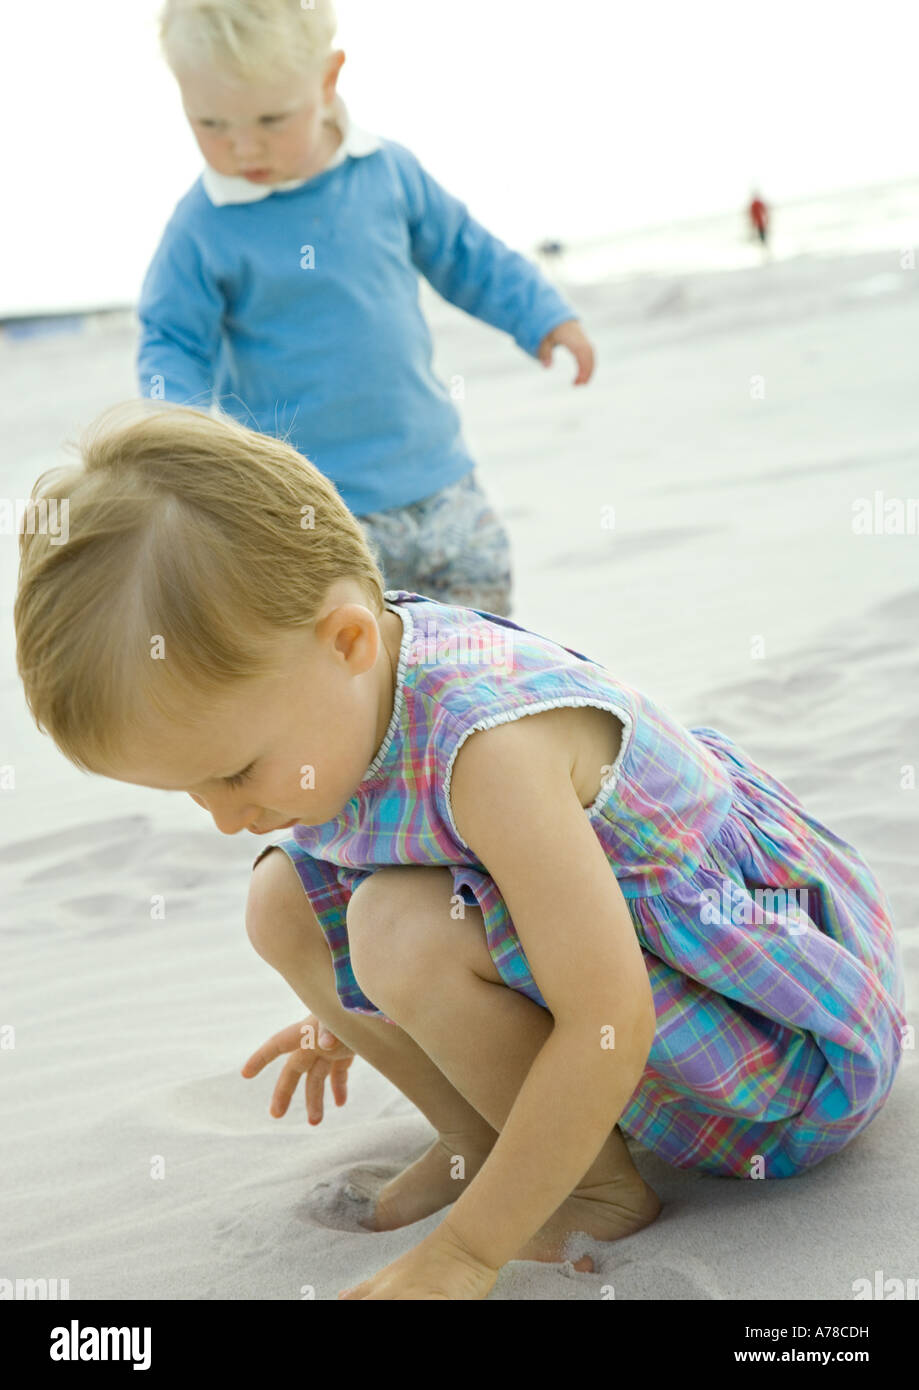 Two toddlers playing on beach - Stock Image